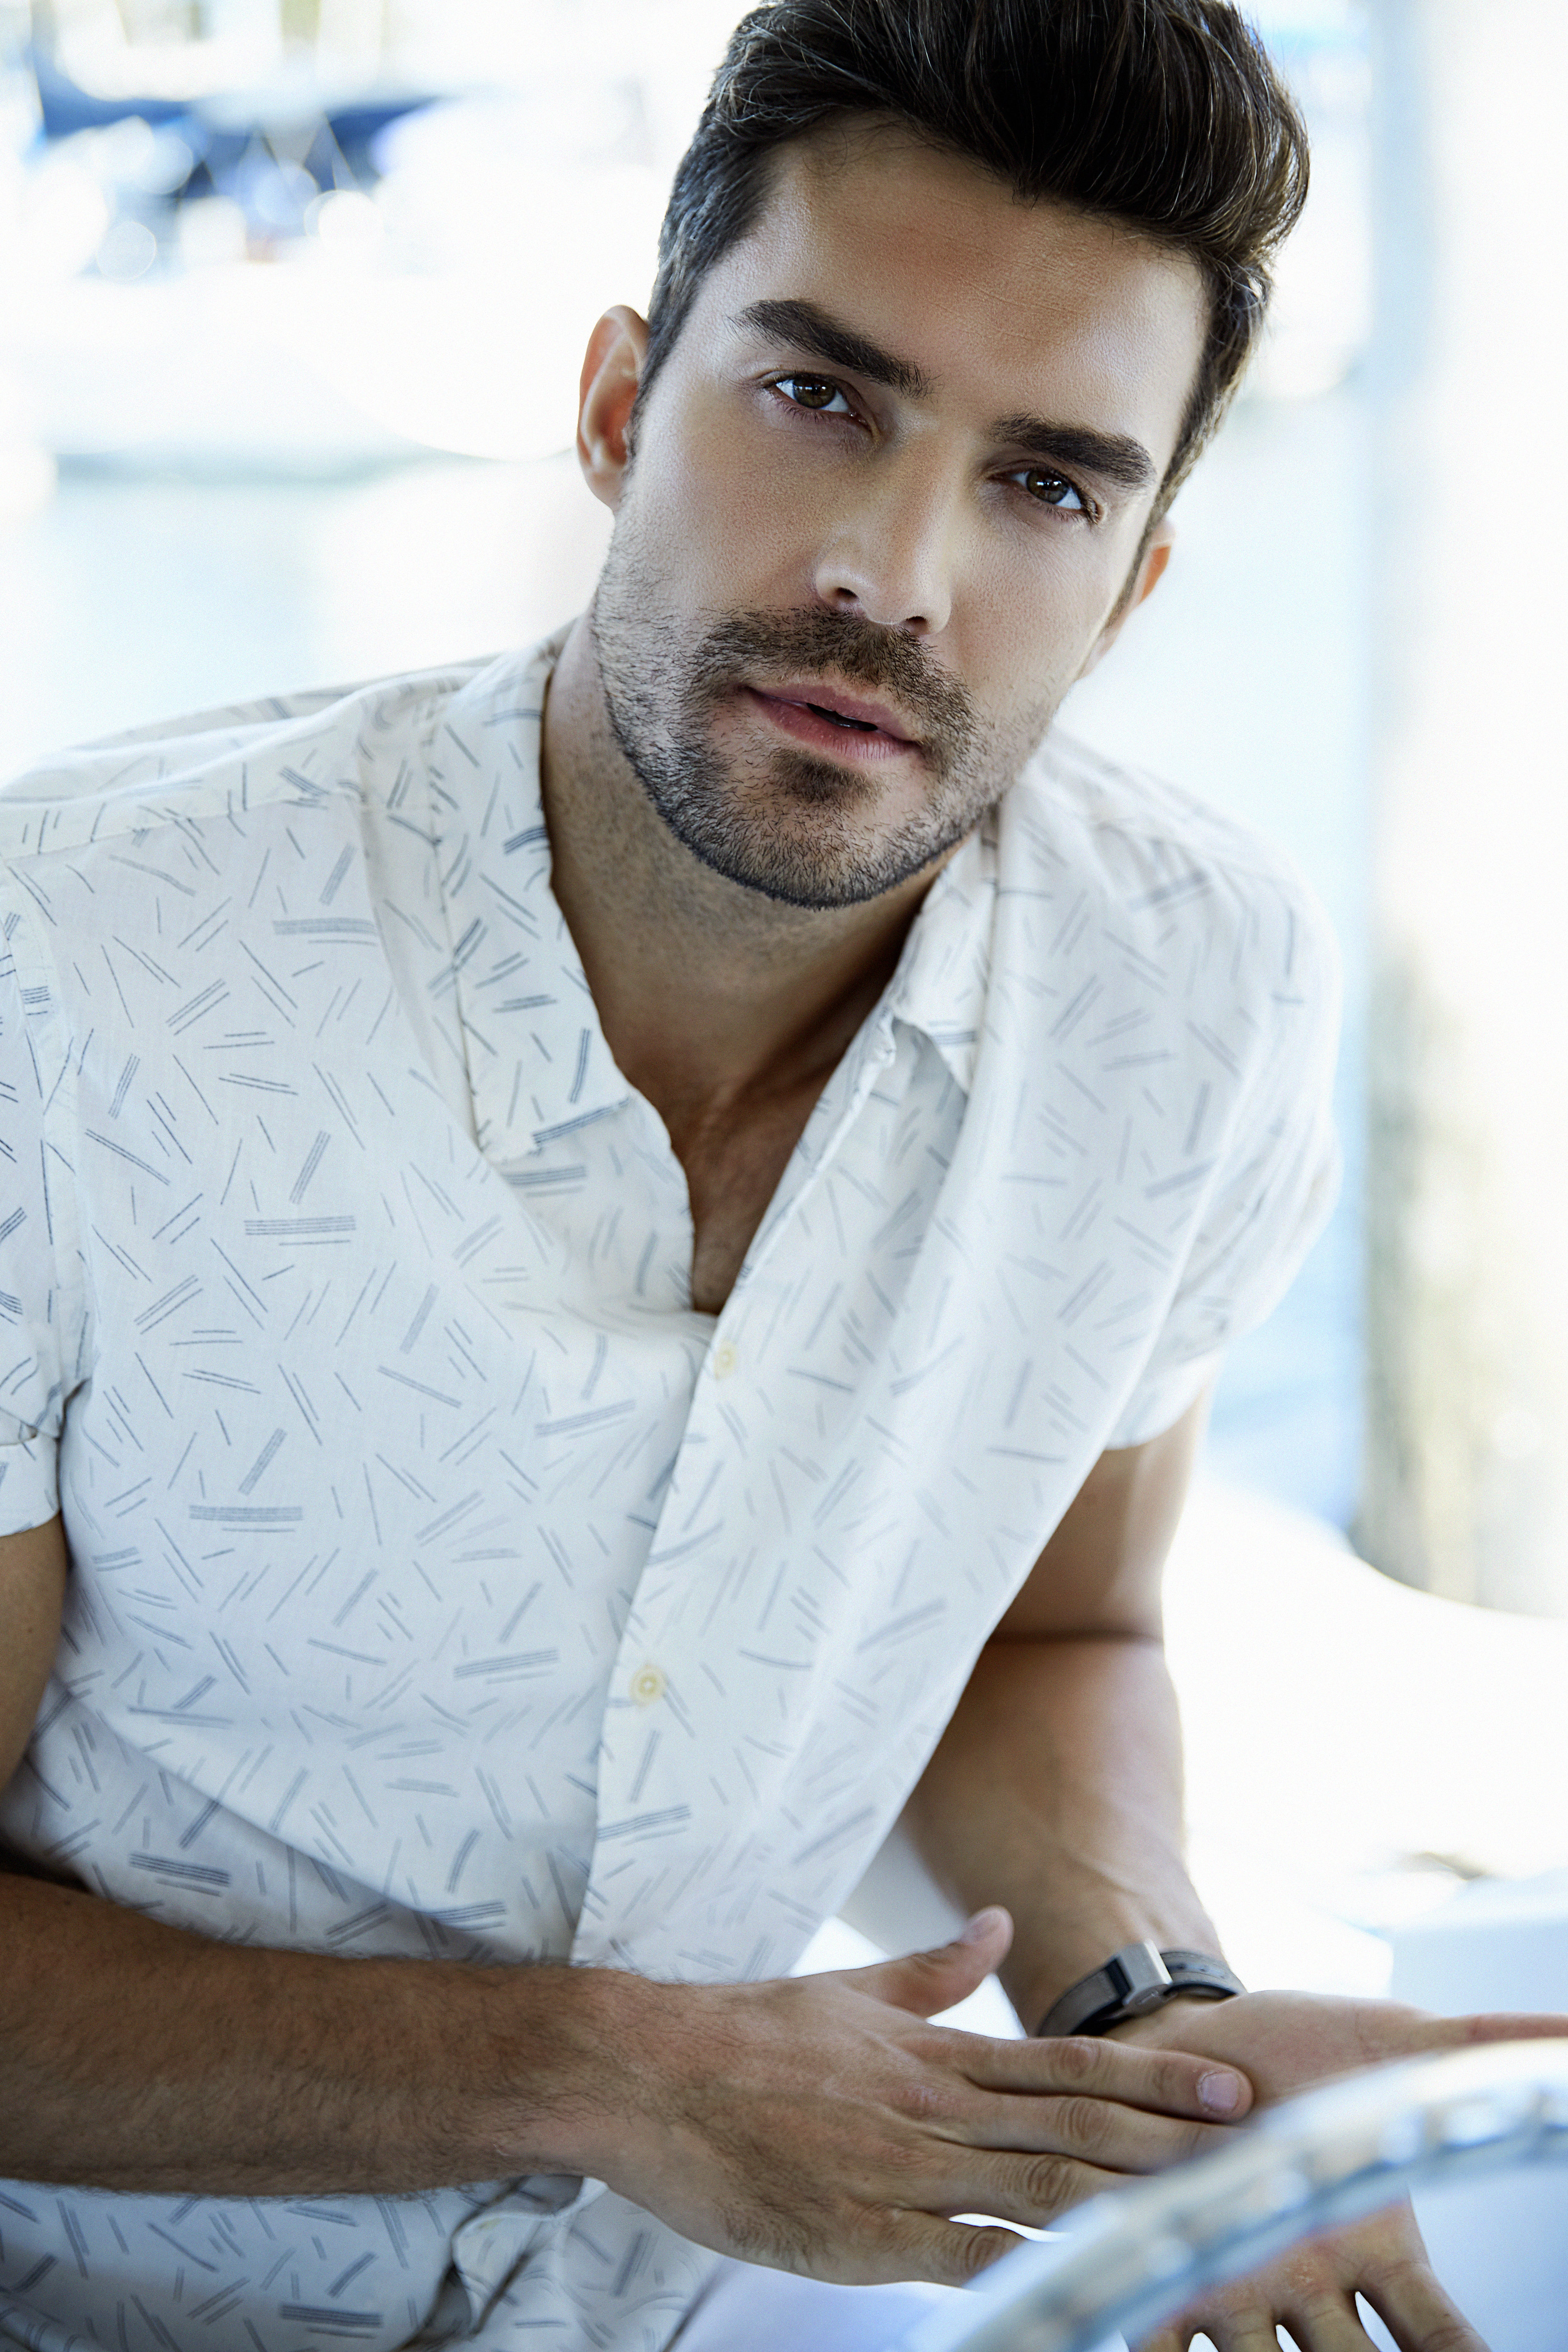 White Printed Button Down T-Shirt: ALLSAINTS; Watch: Ferragamo